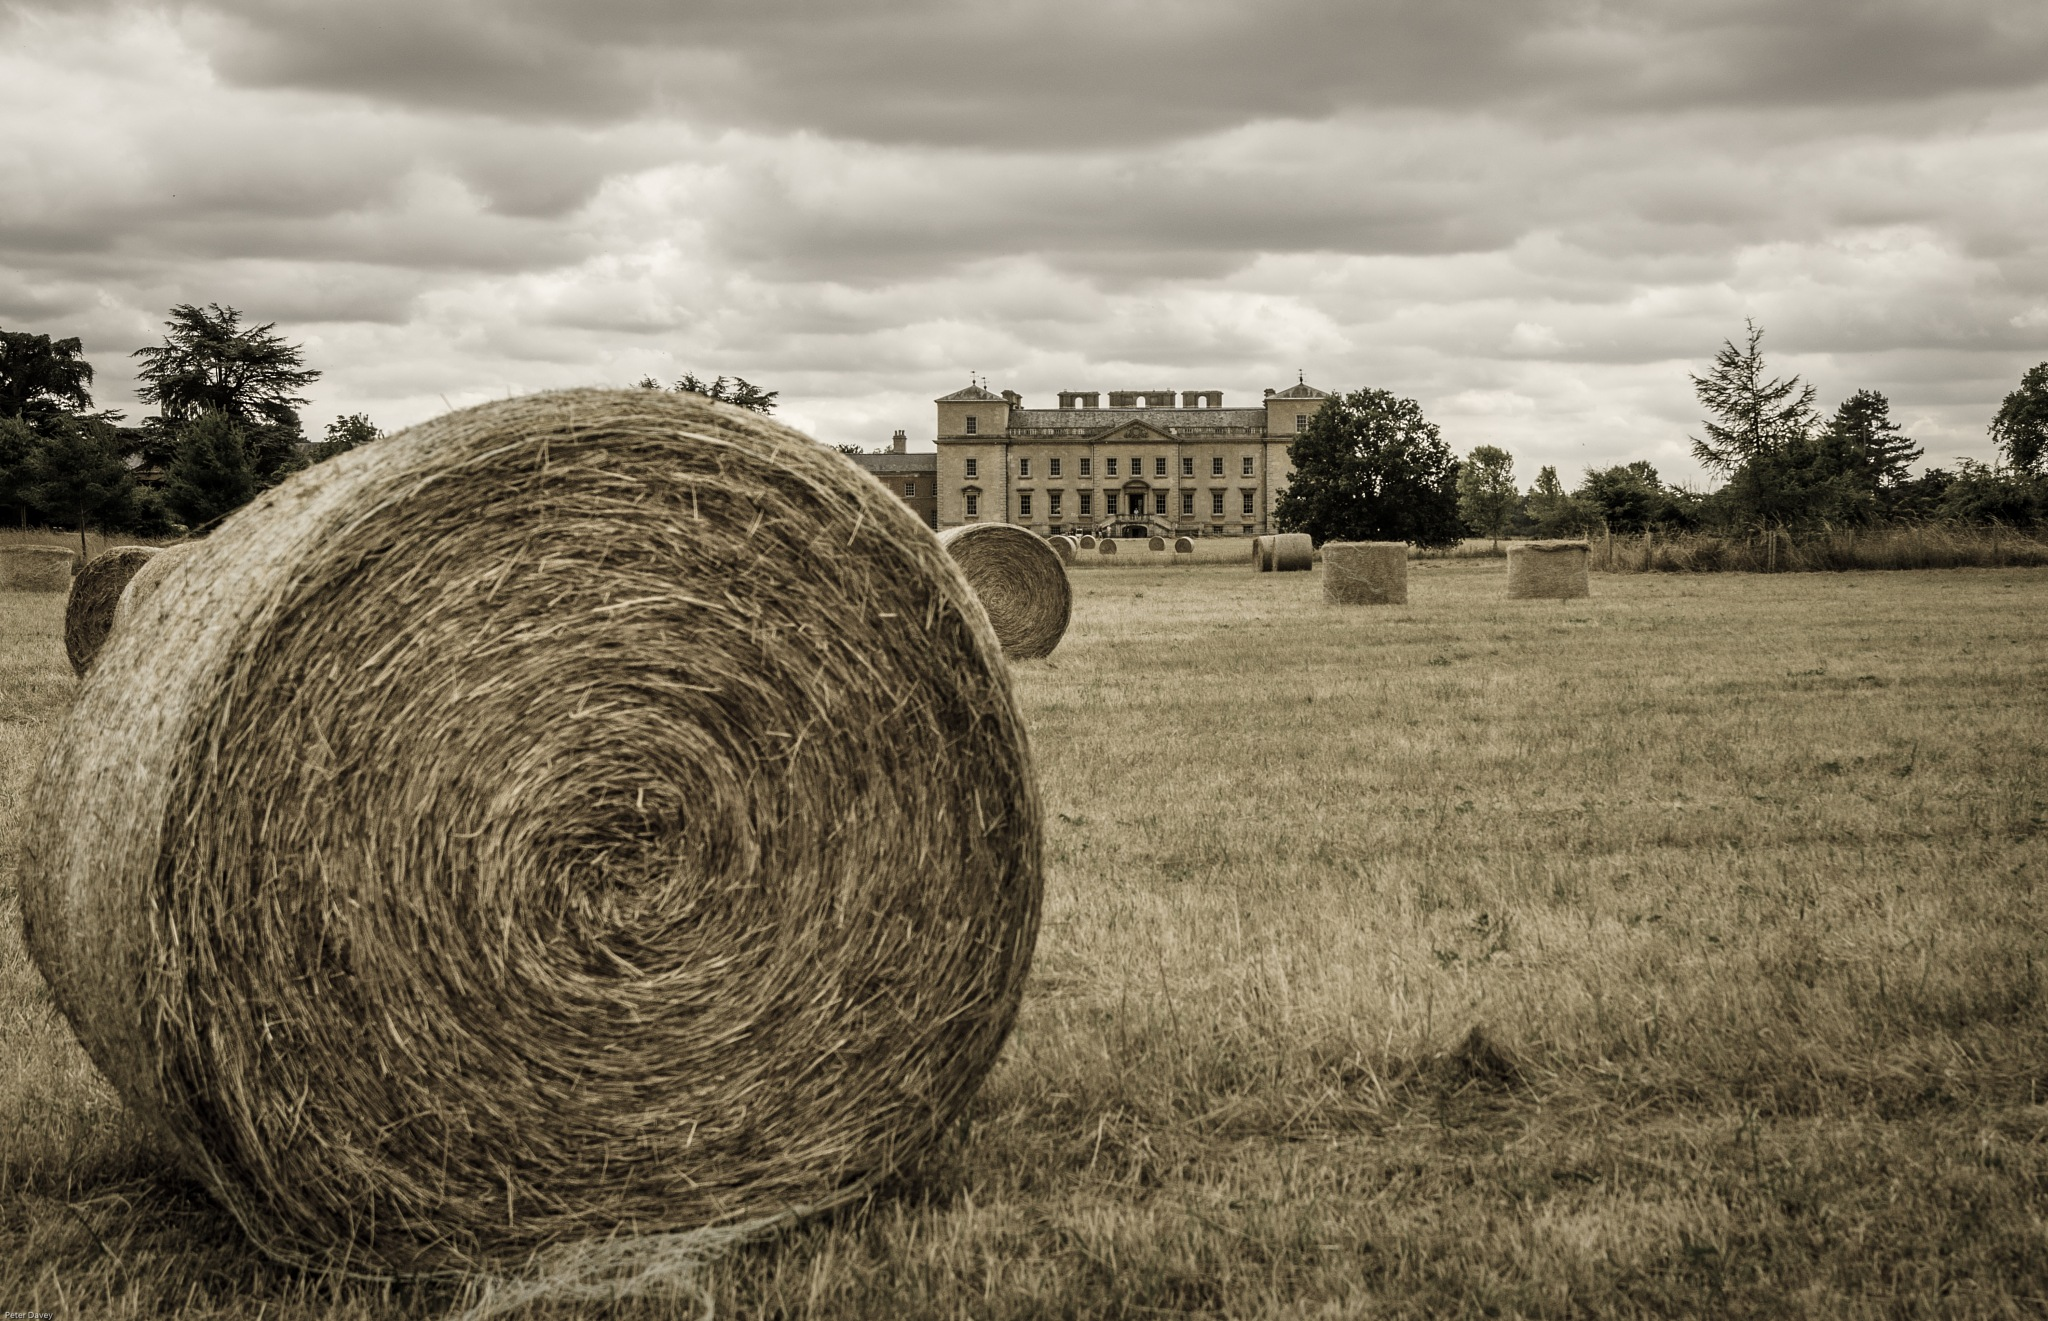 Croome House by peter.davey.169